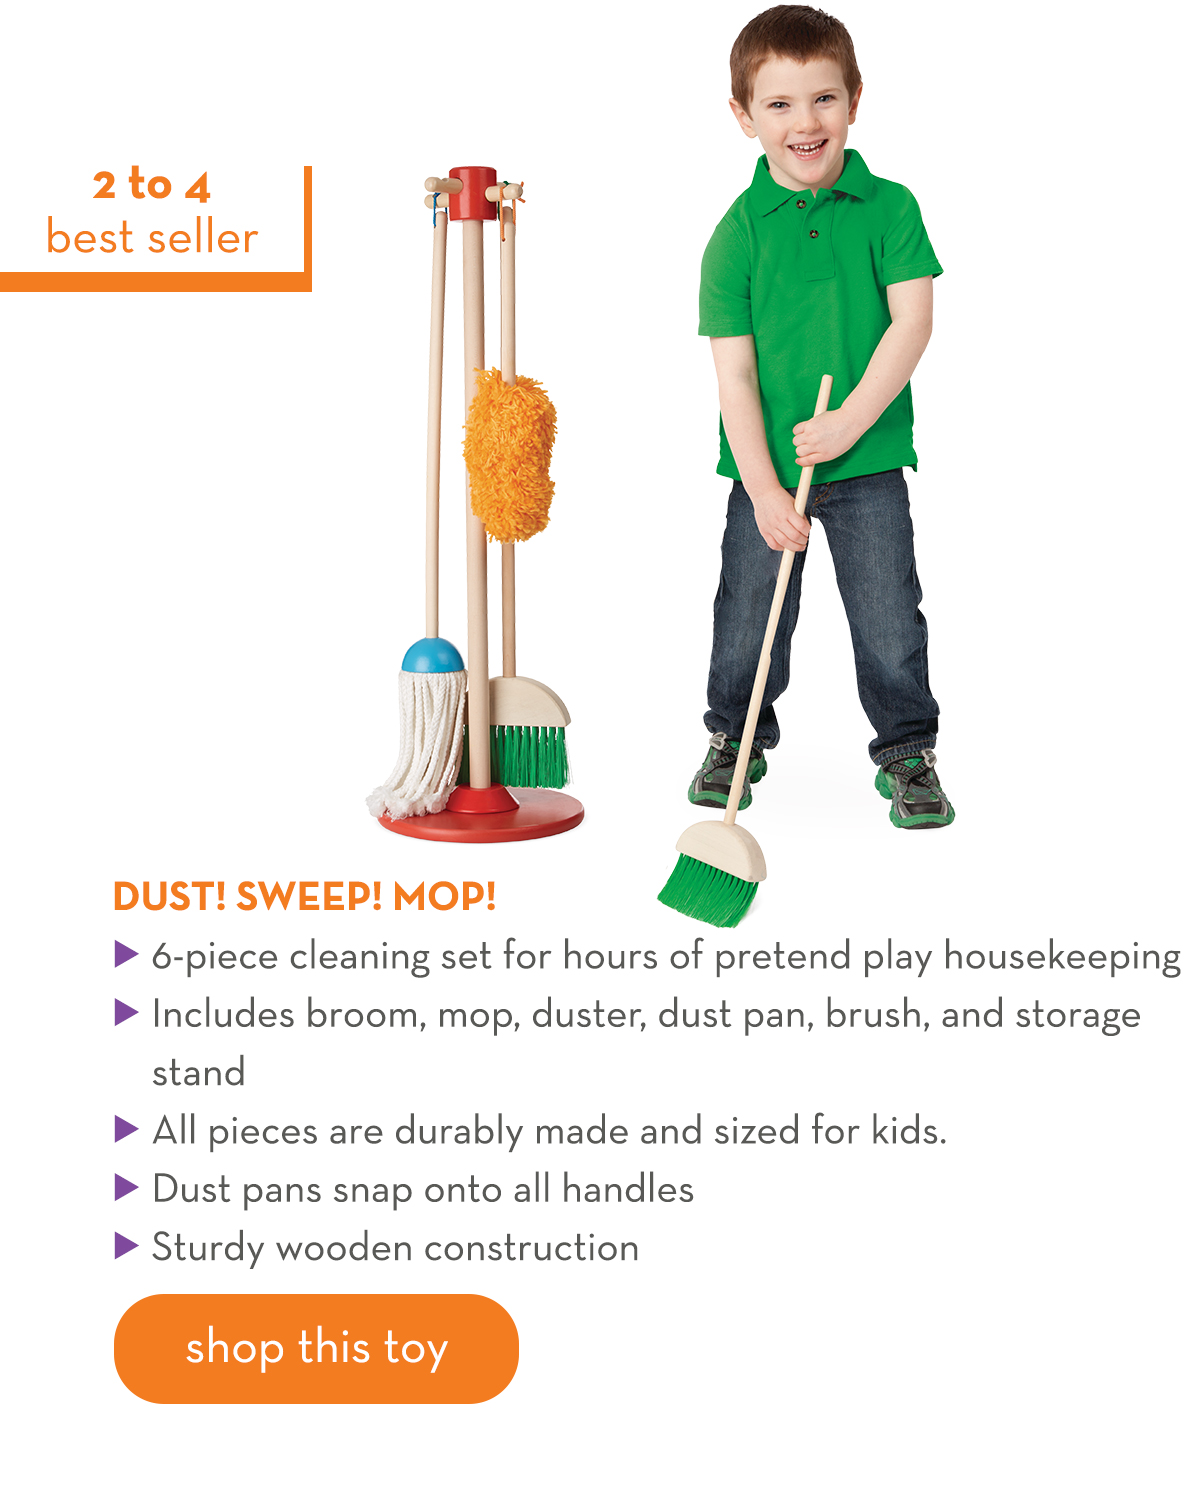 2 to 4 - Dust! Sweep! Mop!